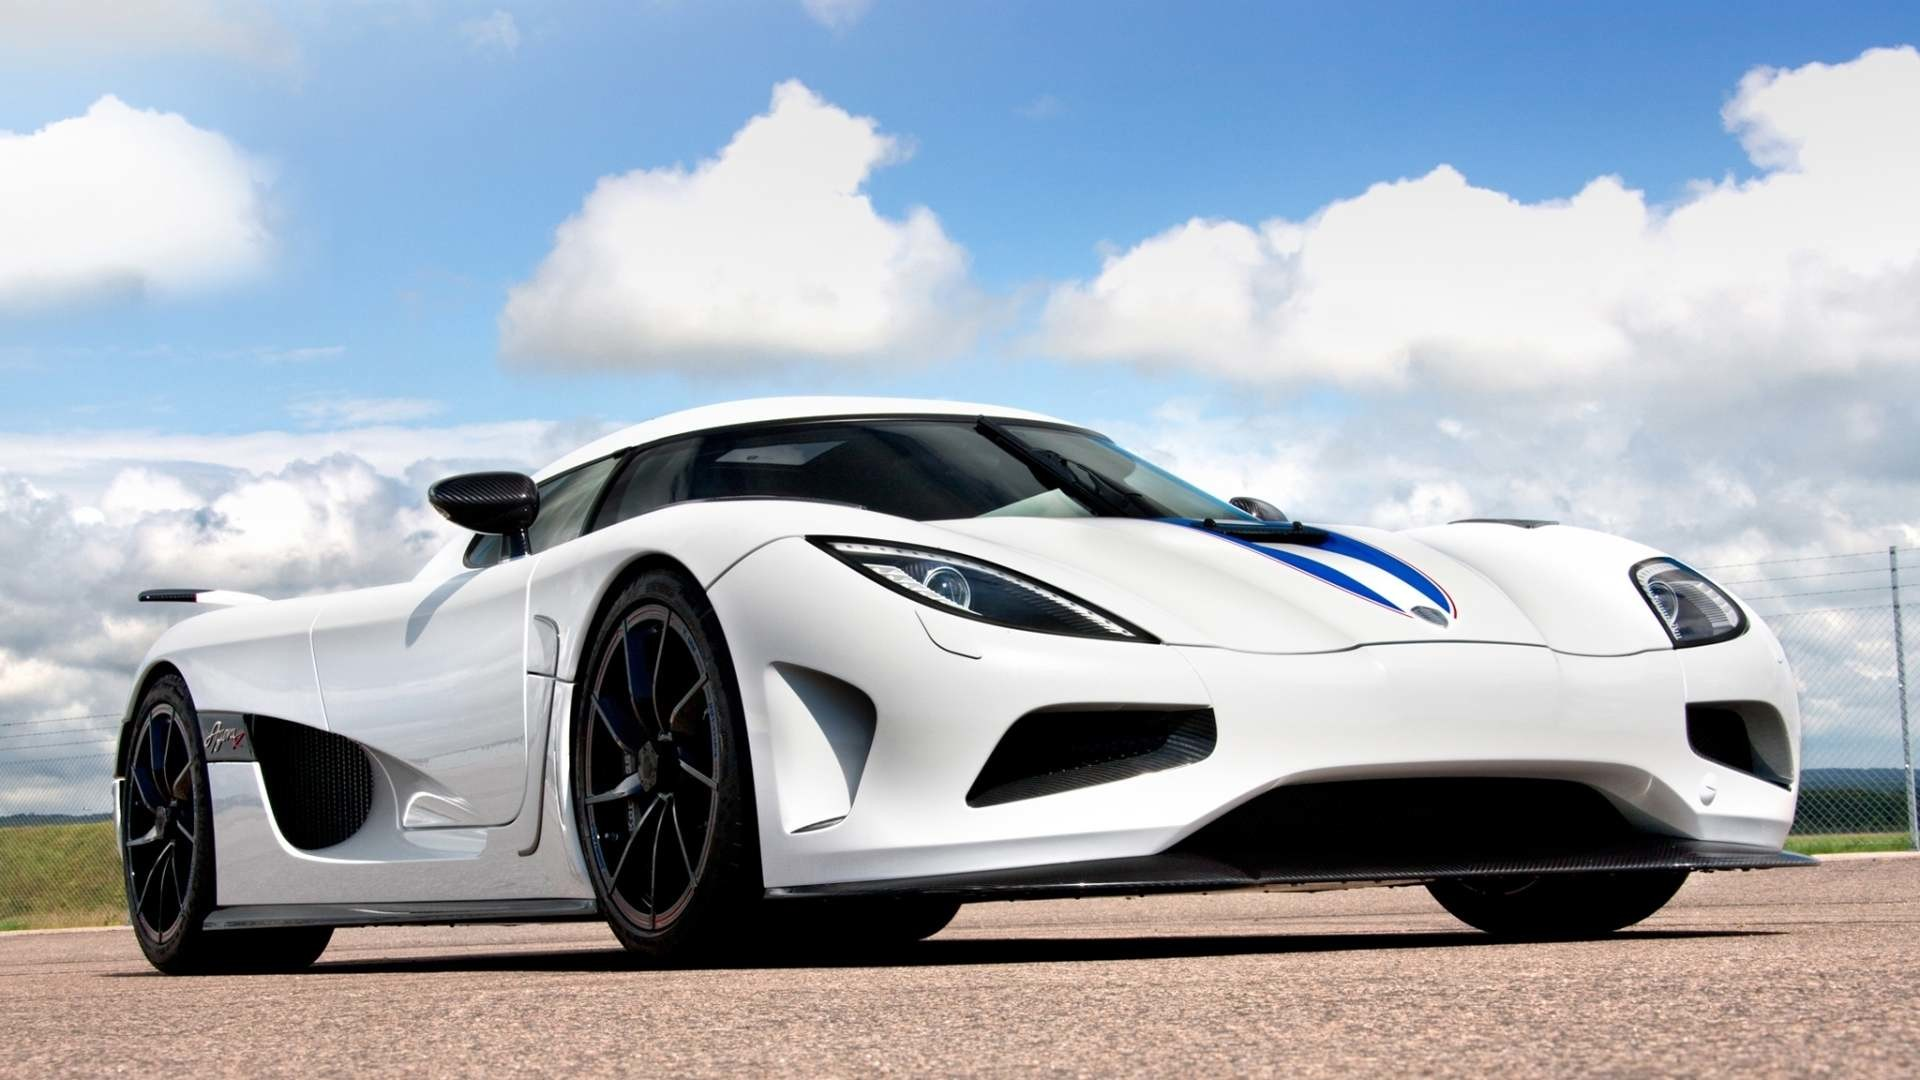 1920x1080 Koenigsegg Agera R Wallpaper HD